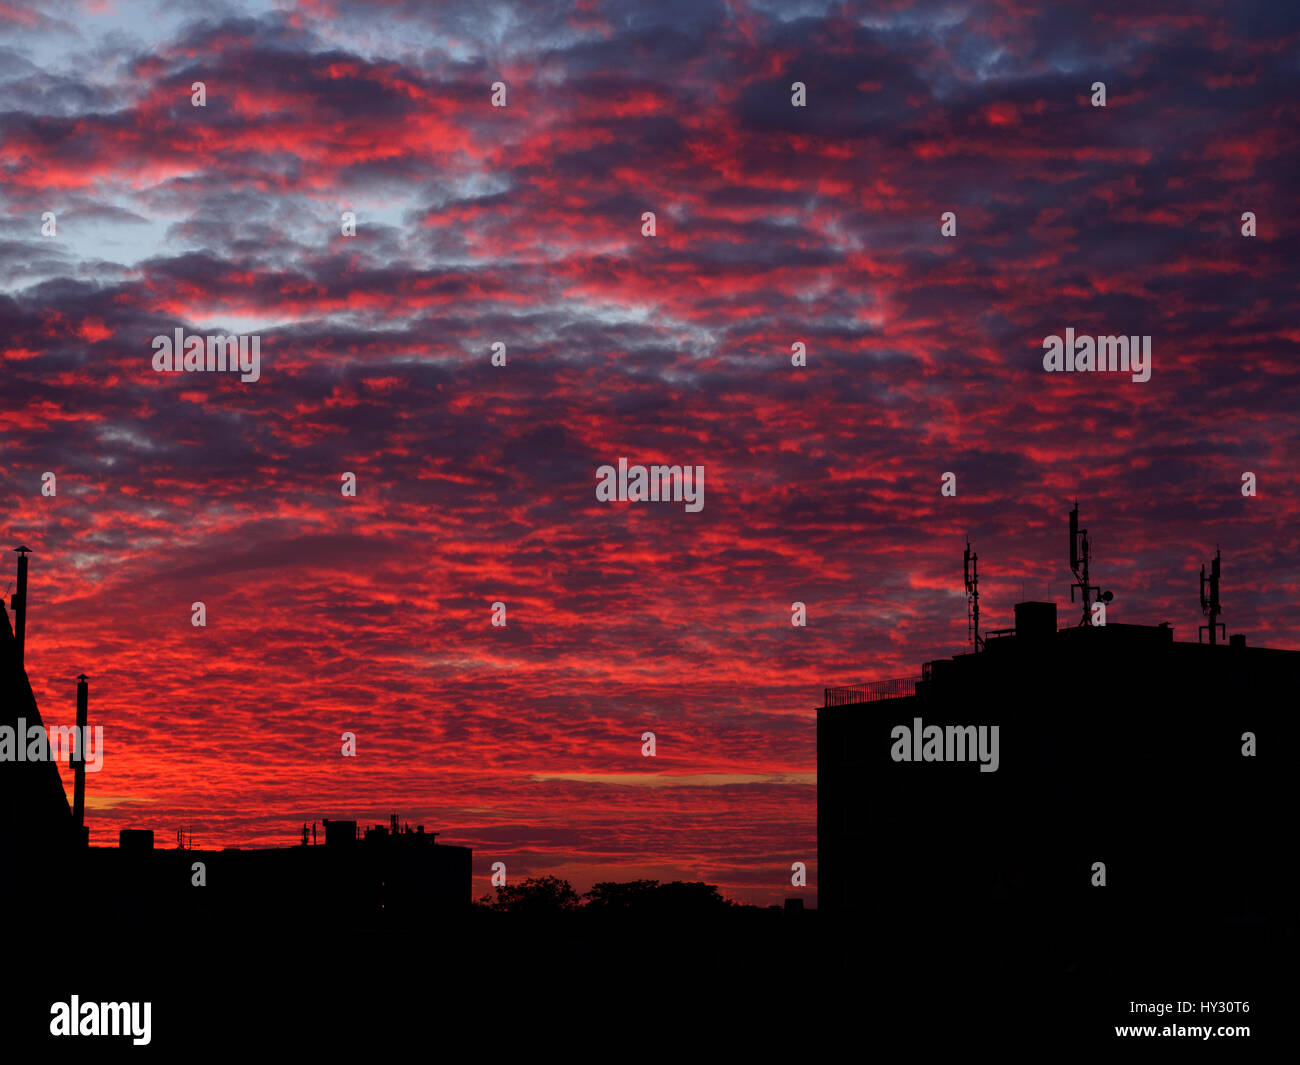 Silhouette Of City Against Dramatic Sky During Sunset - Stock Image